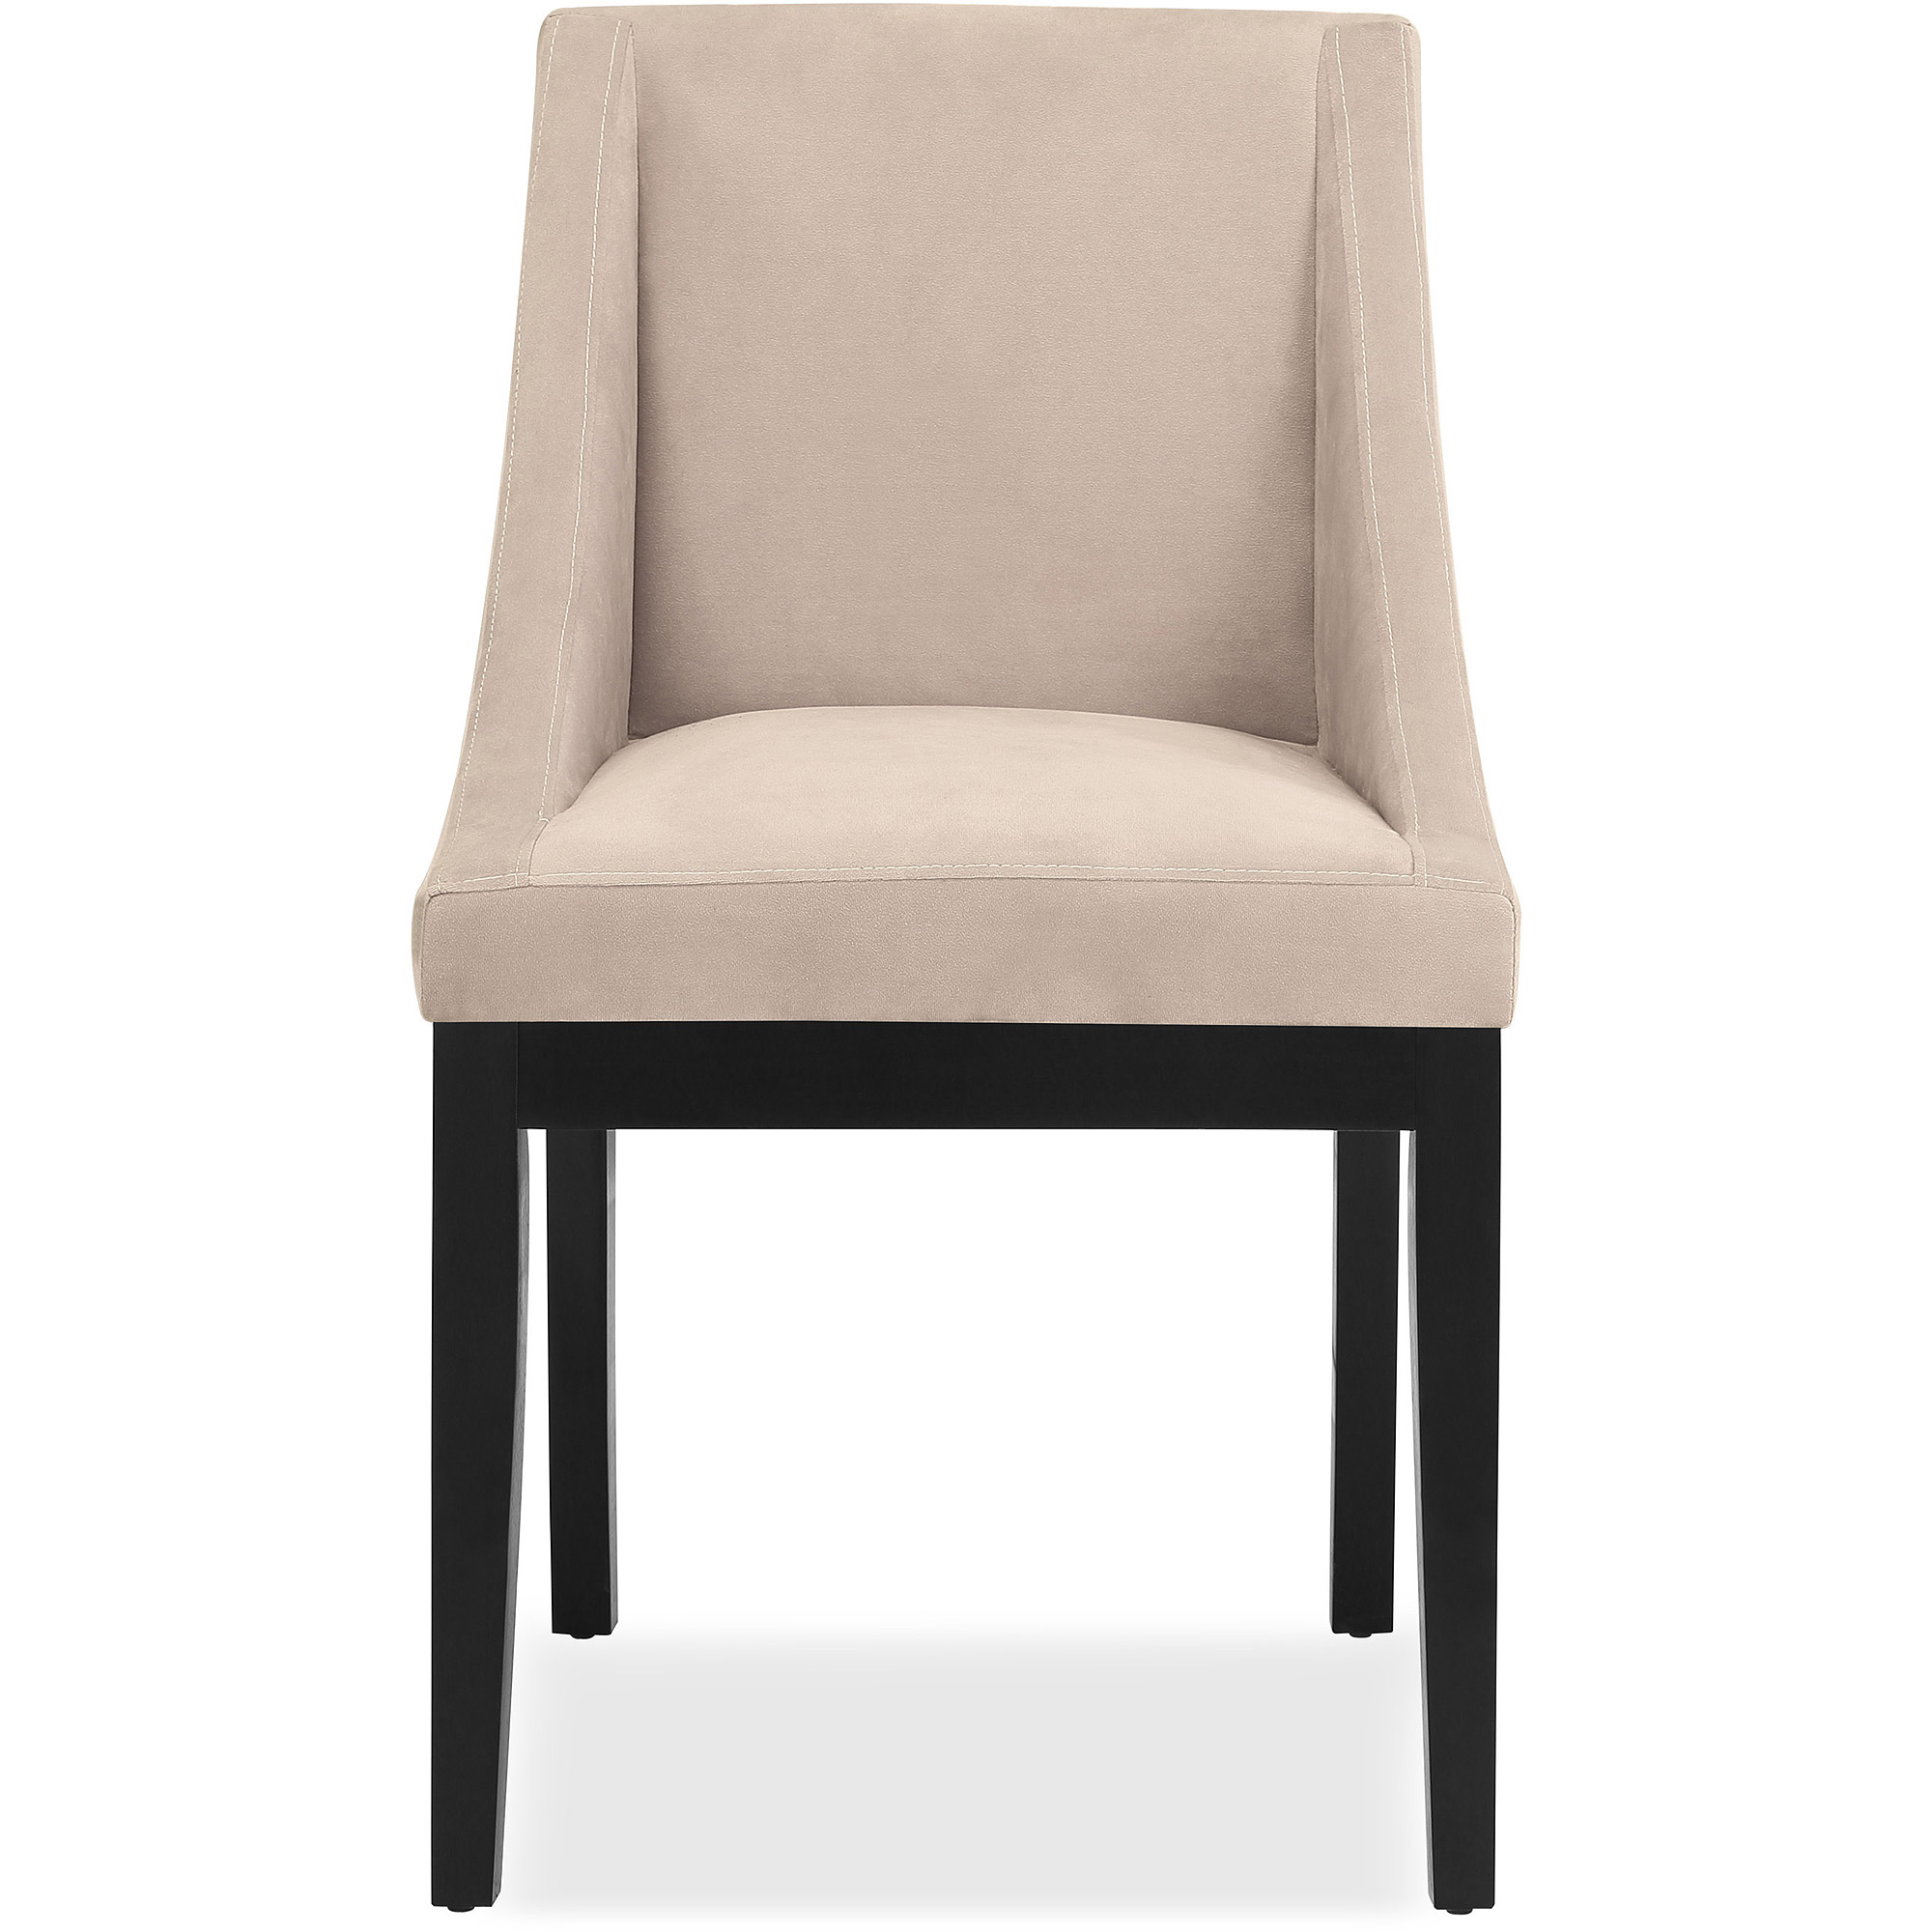 Tufted Dining Set   Tufted Dining Chair   Dinette Chairs